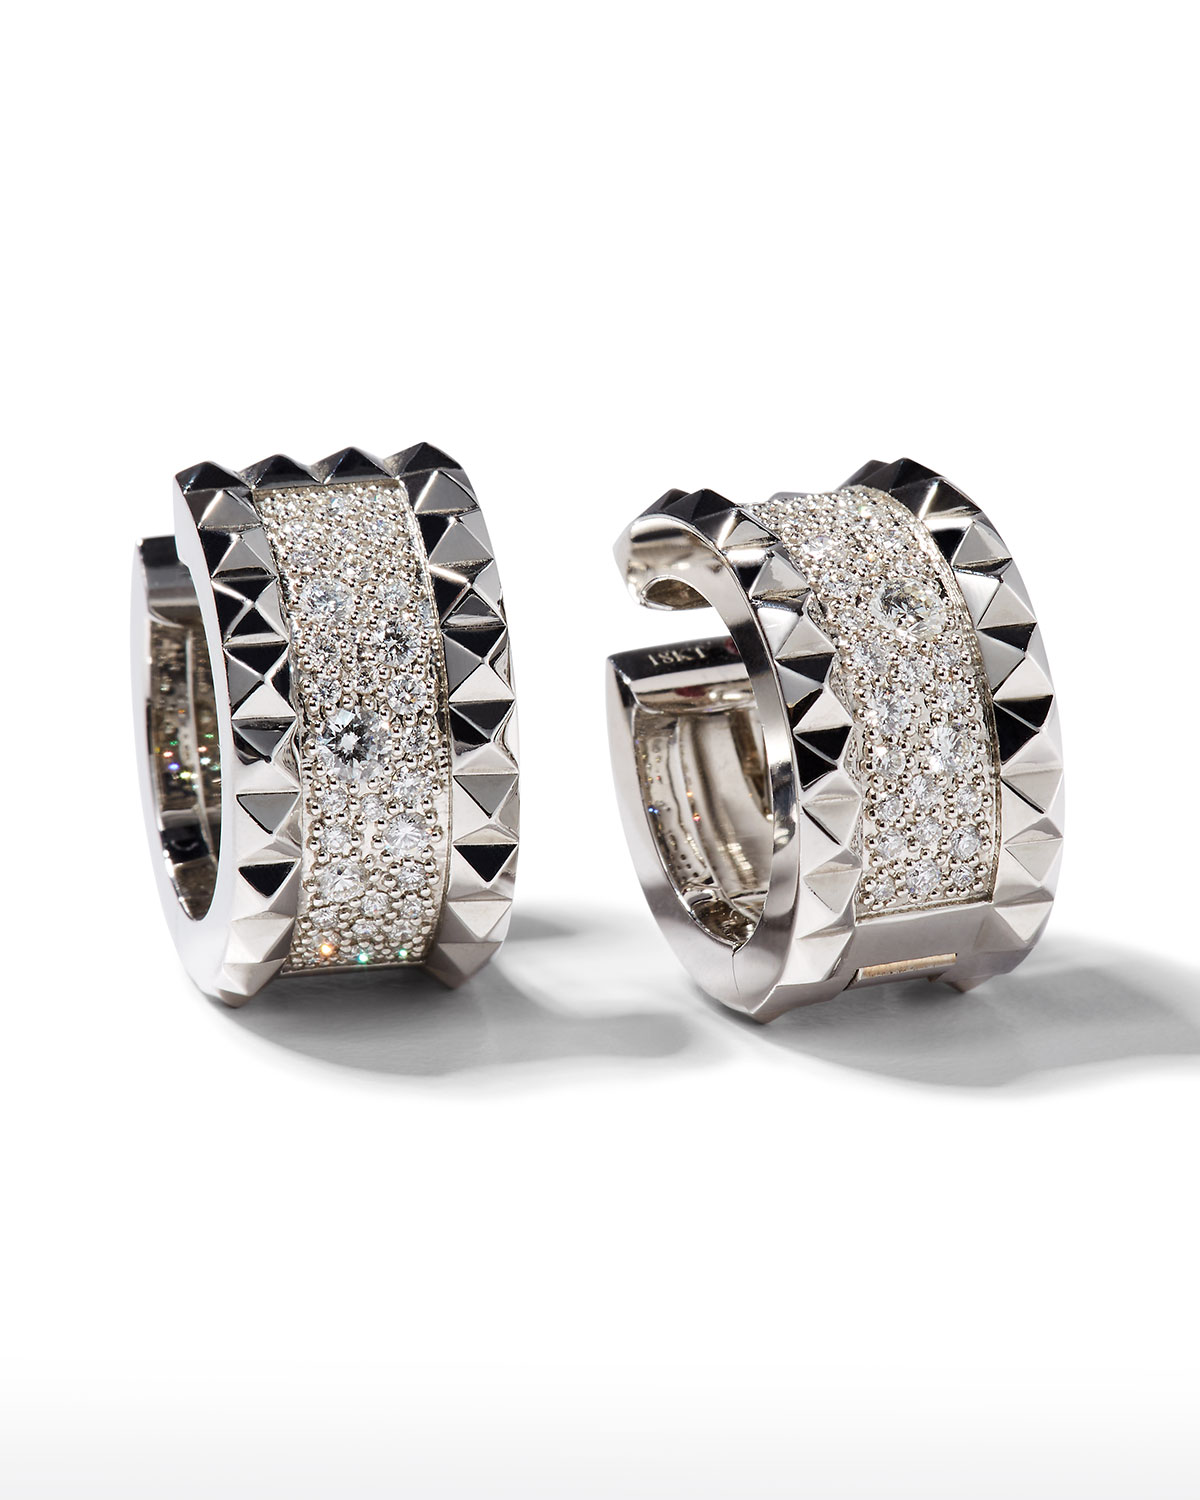 Roberto Coin ROBERTO COIN ROCK & DIAMONDS 18K White Gold Huggie Earrings with Diamonds